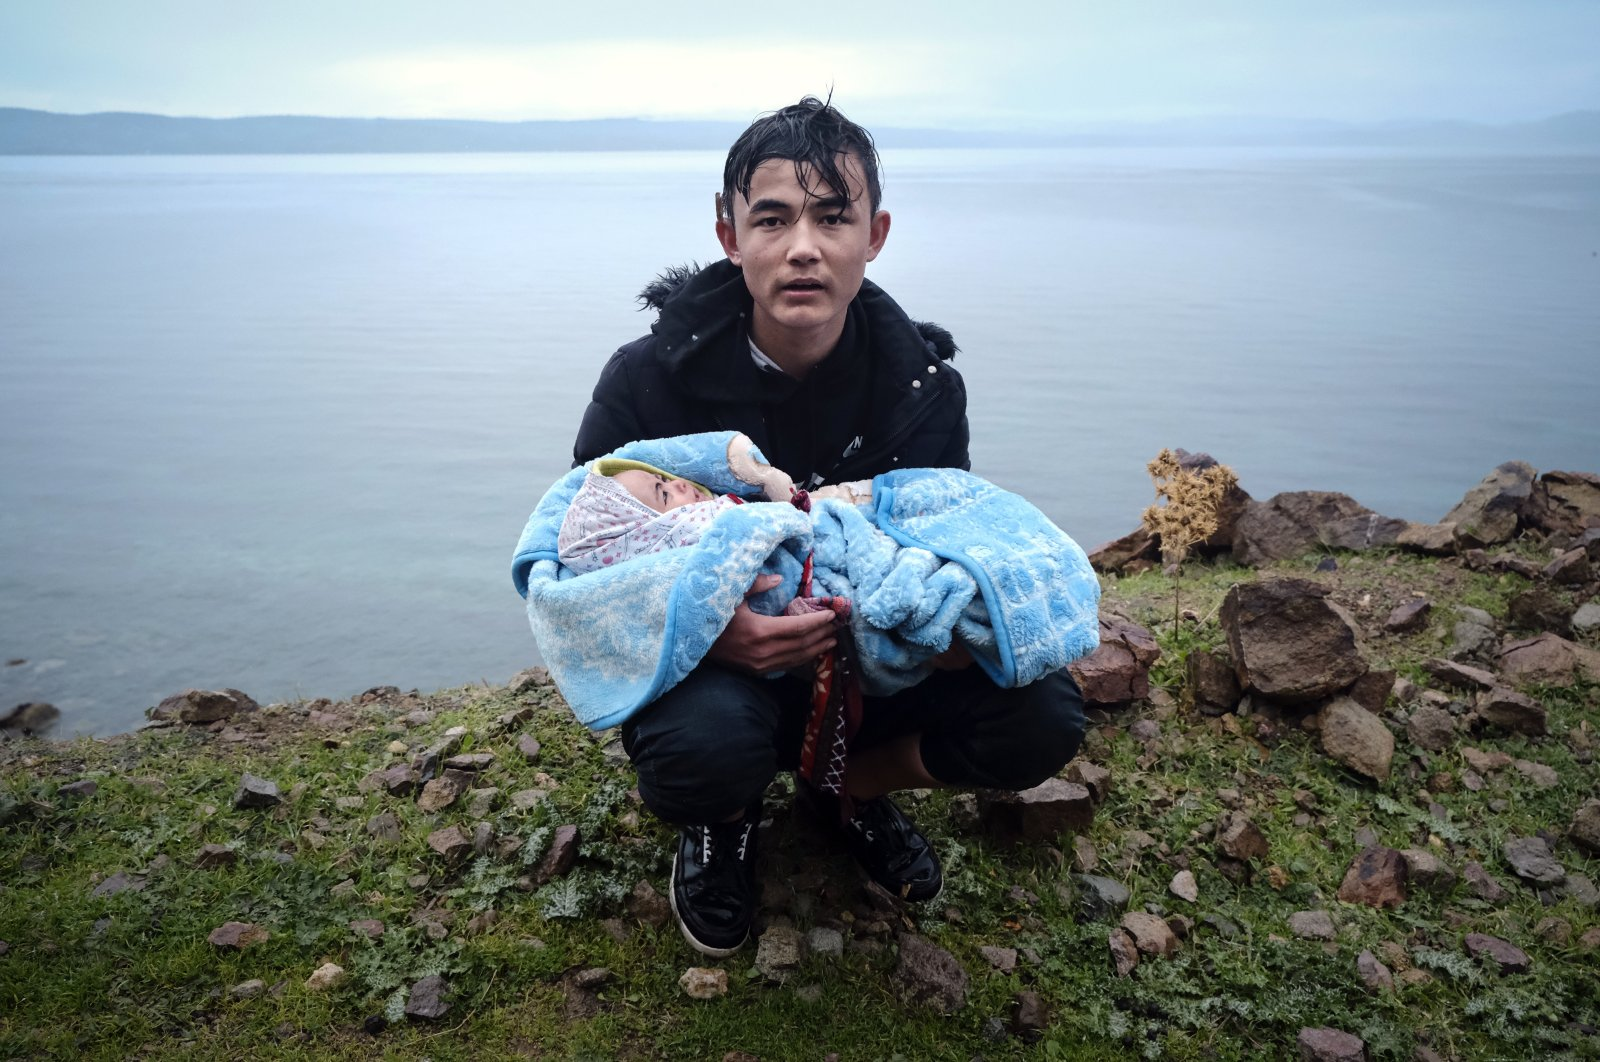 A migrant holding a baby pauses on the side of the road while walking to the village of Skala Sikaminias on the Greek island of Lesbos after crossing the Aegean sea from Turkey on a dinghy,  March 5, 2020. (AP)